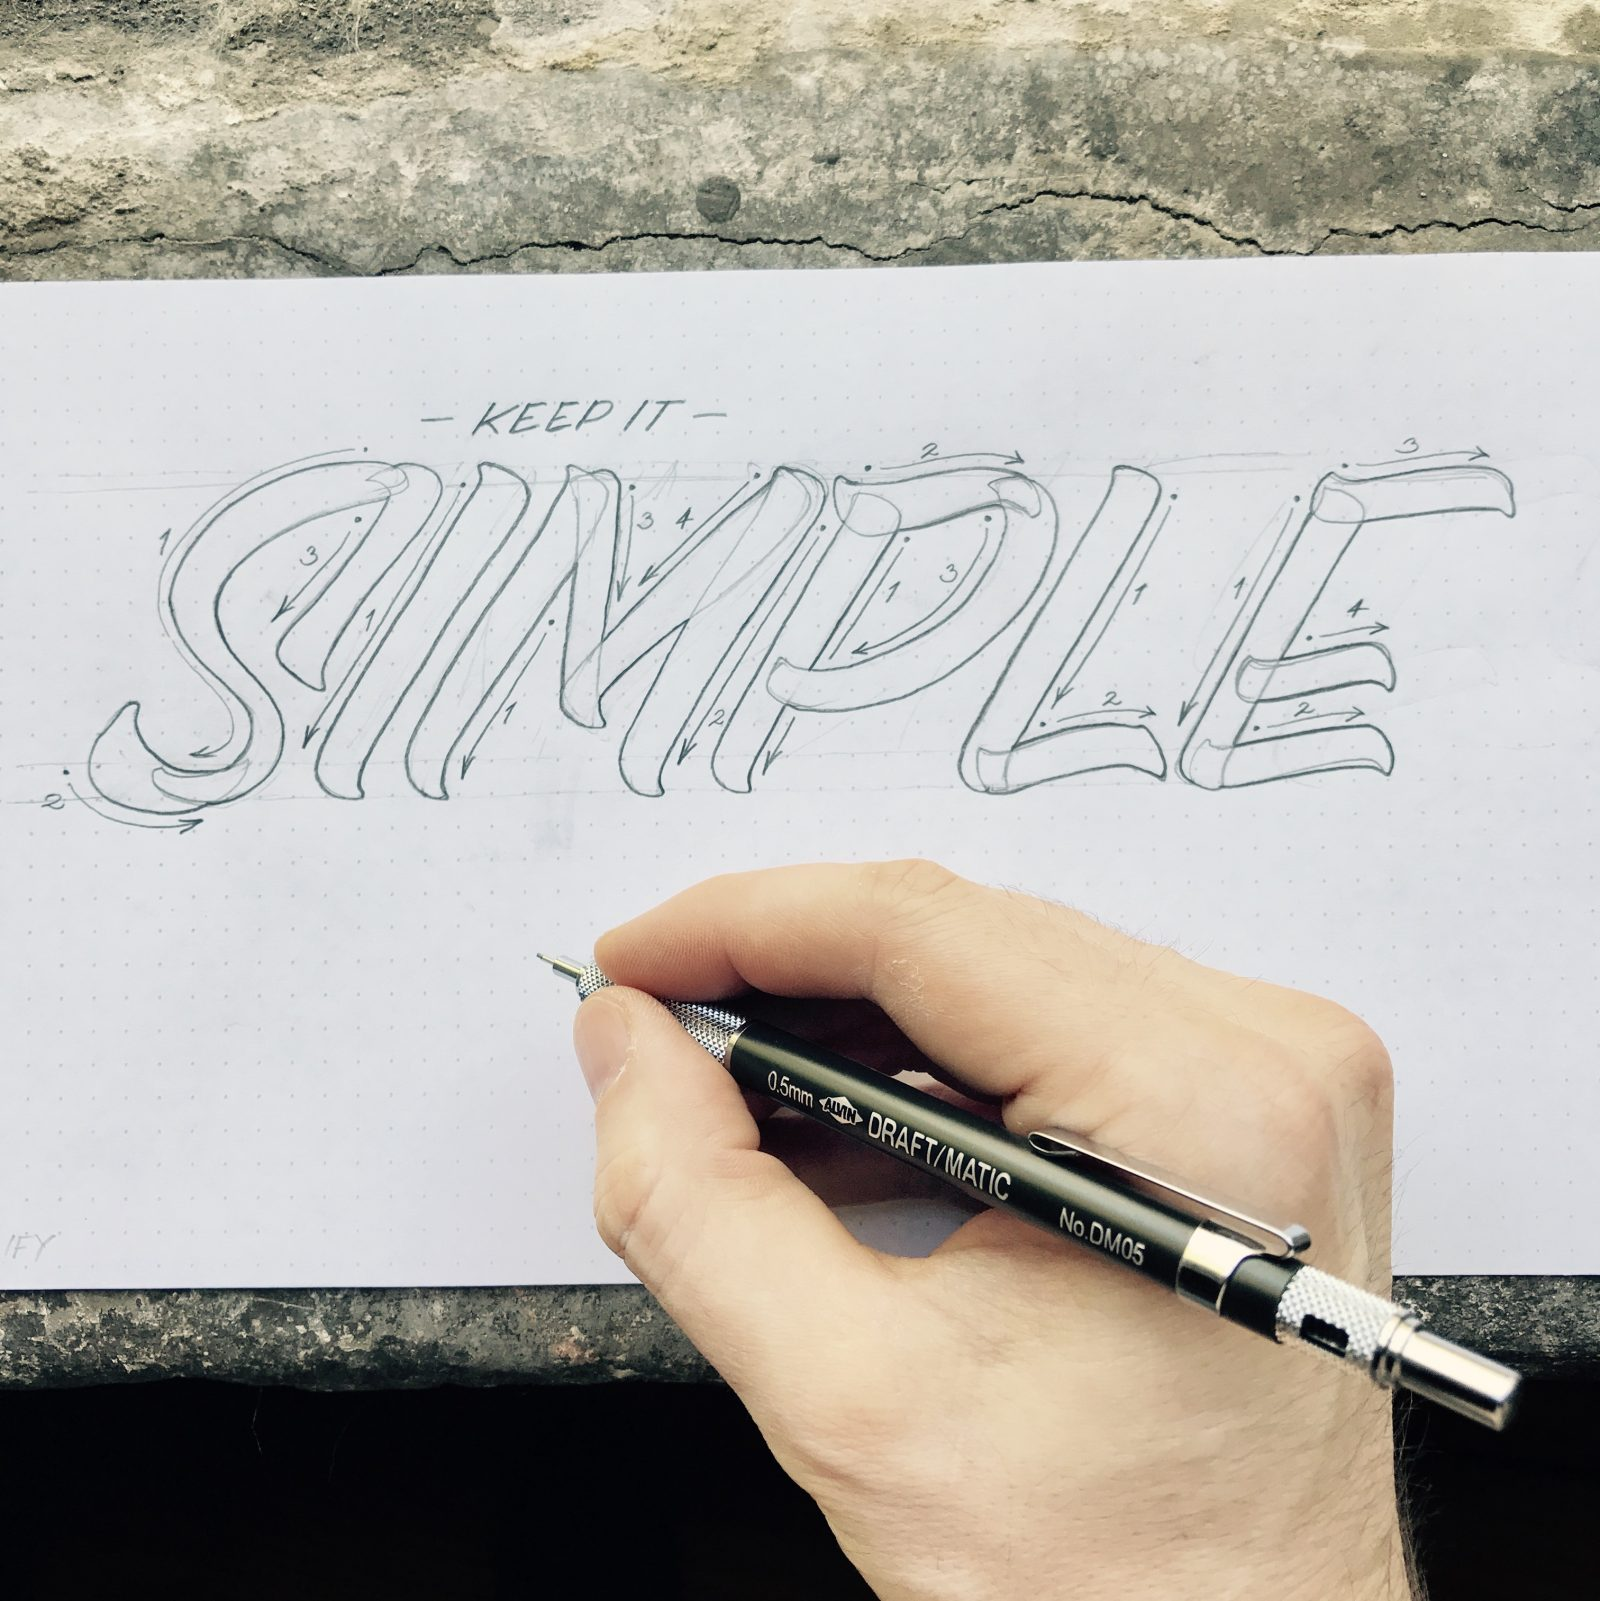 Keep It Simple concept casual lettering